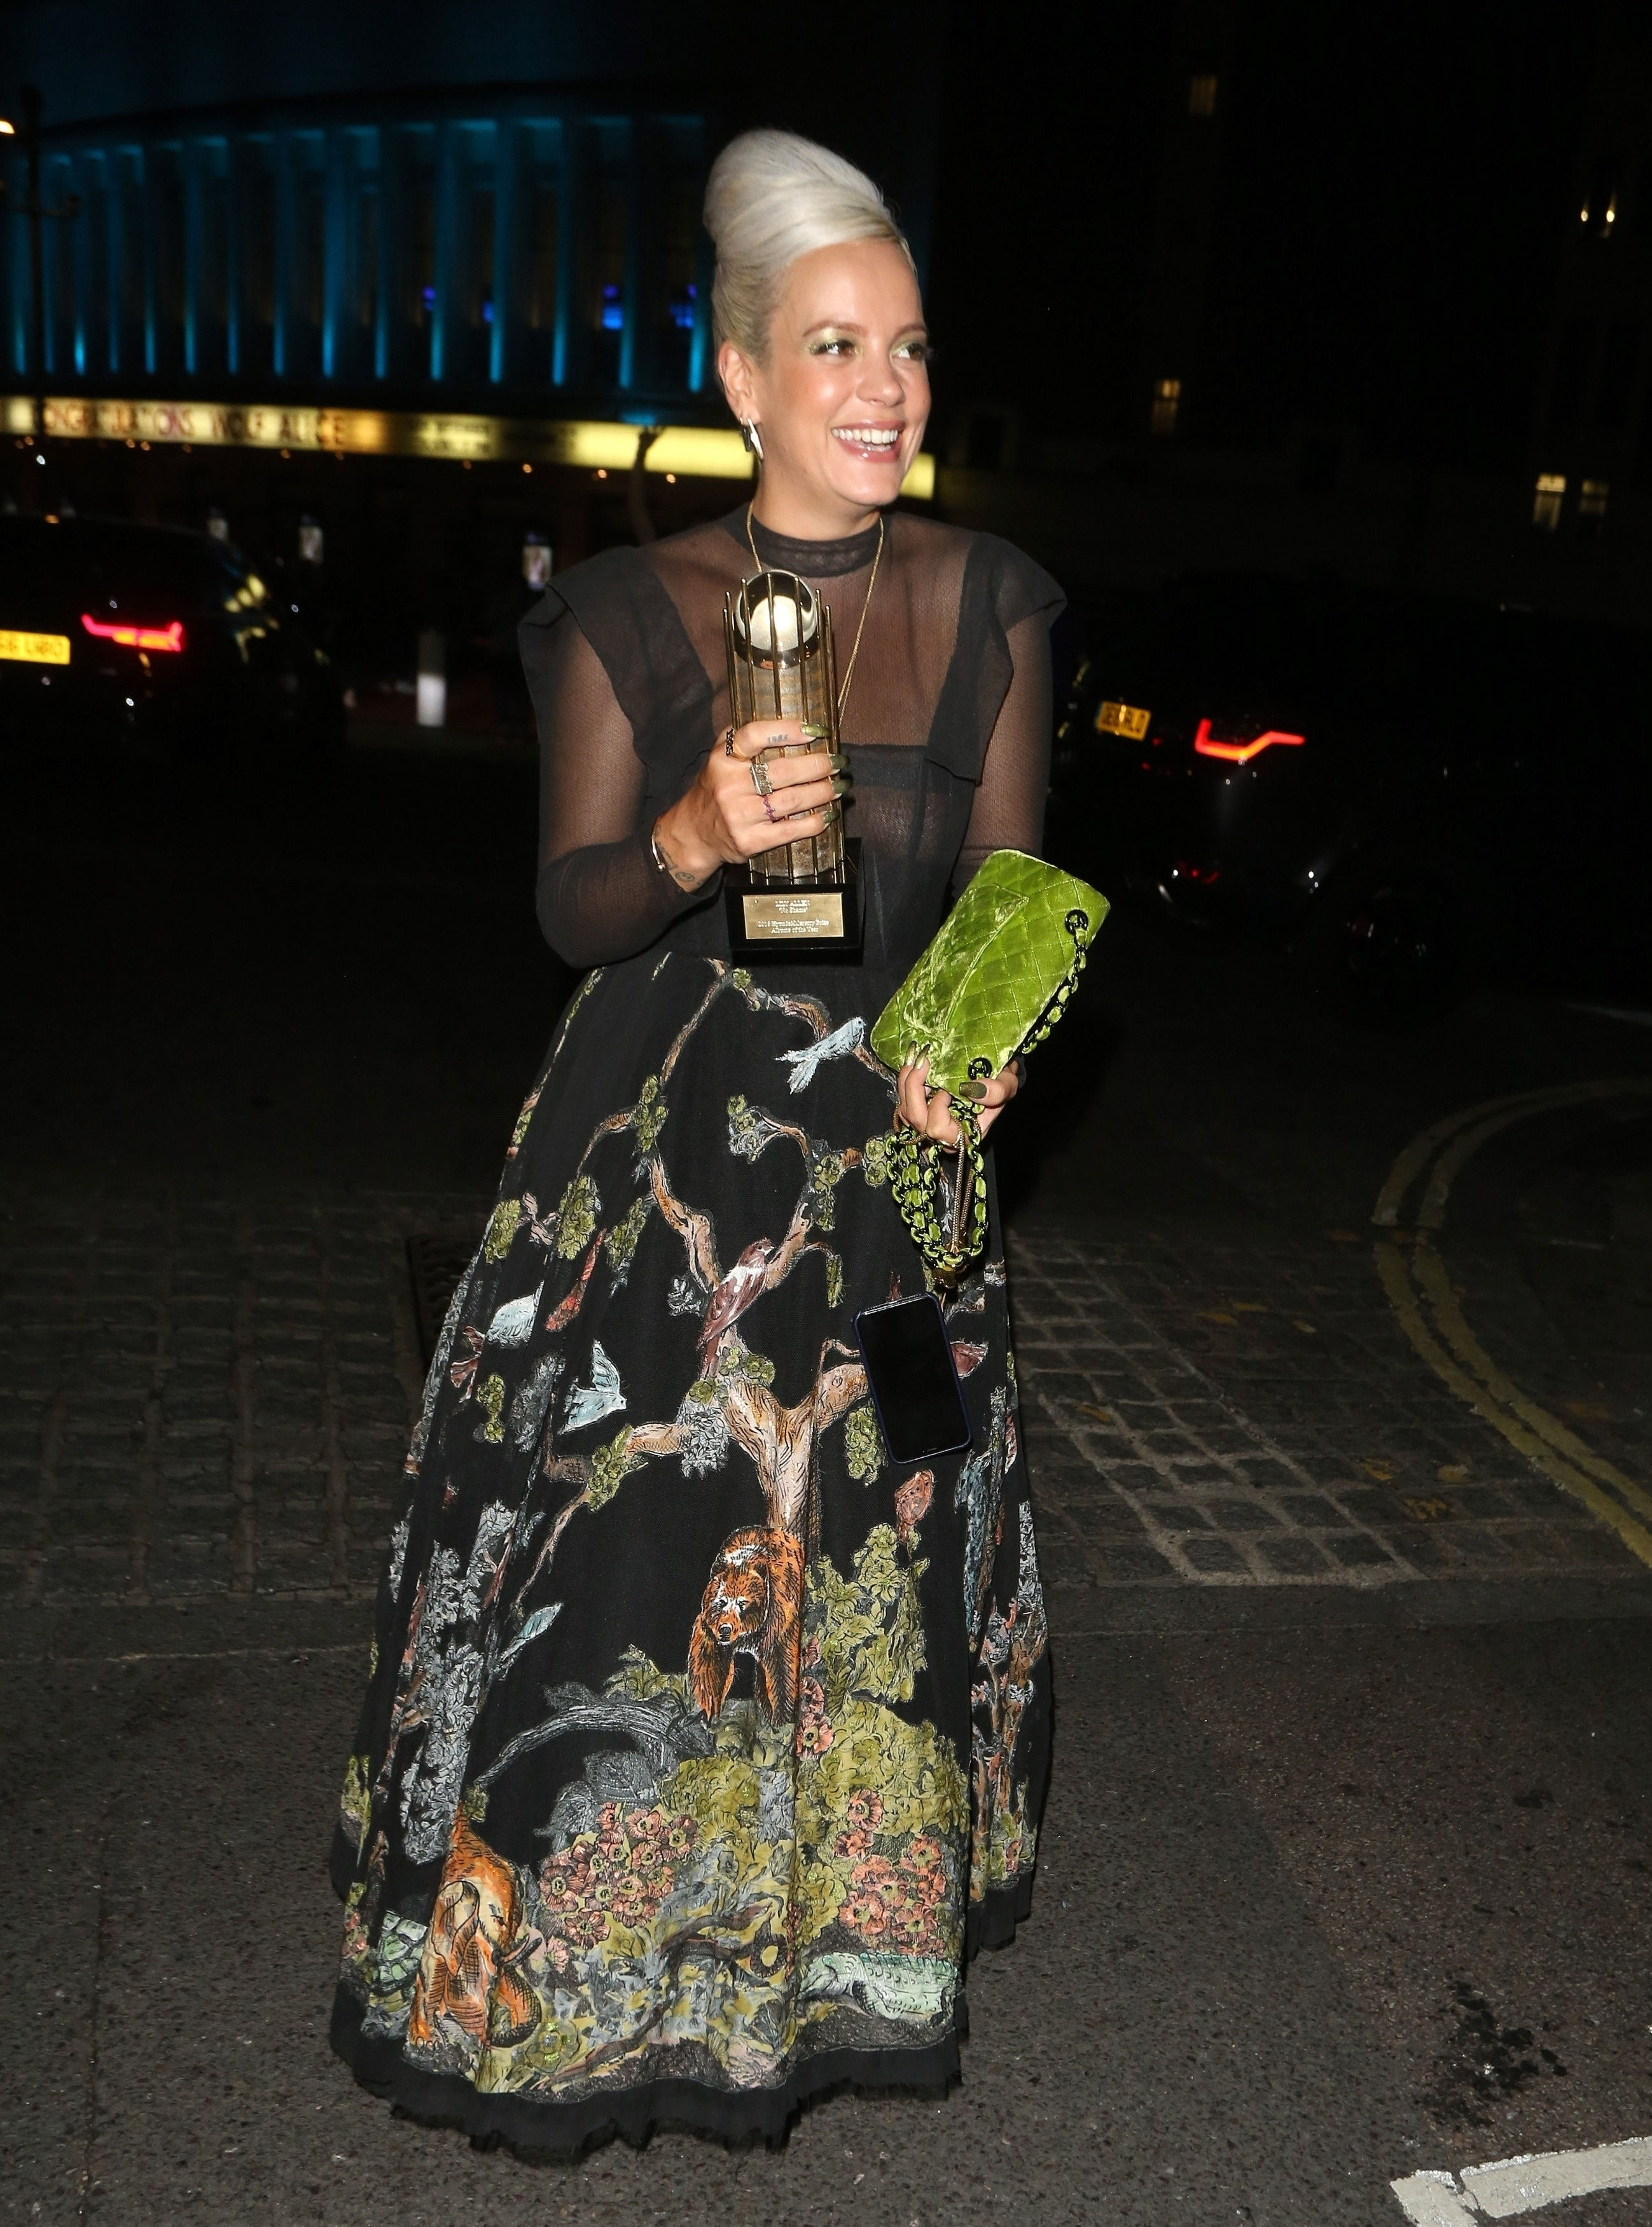 0919040453772_10_Lily-Allen-See-Through-TheFappeningBlog.com-11.jpg